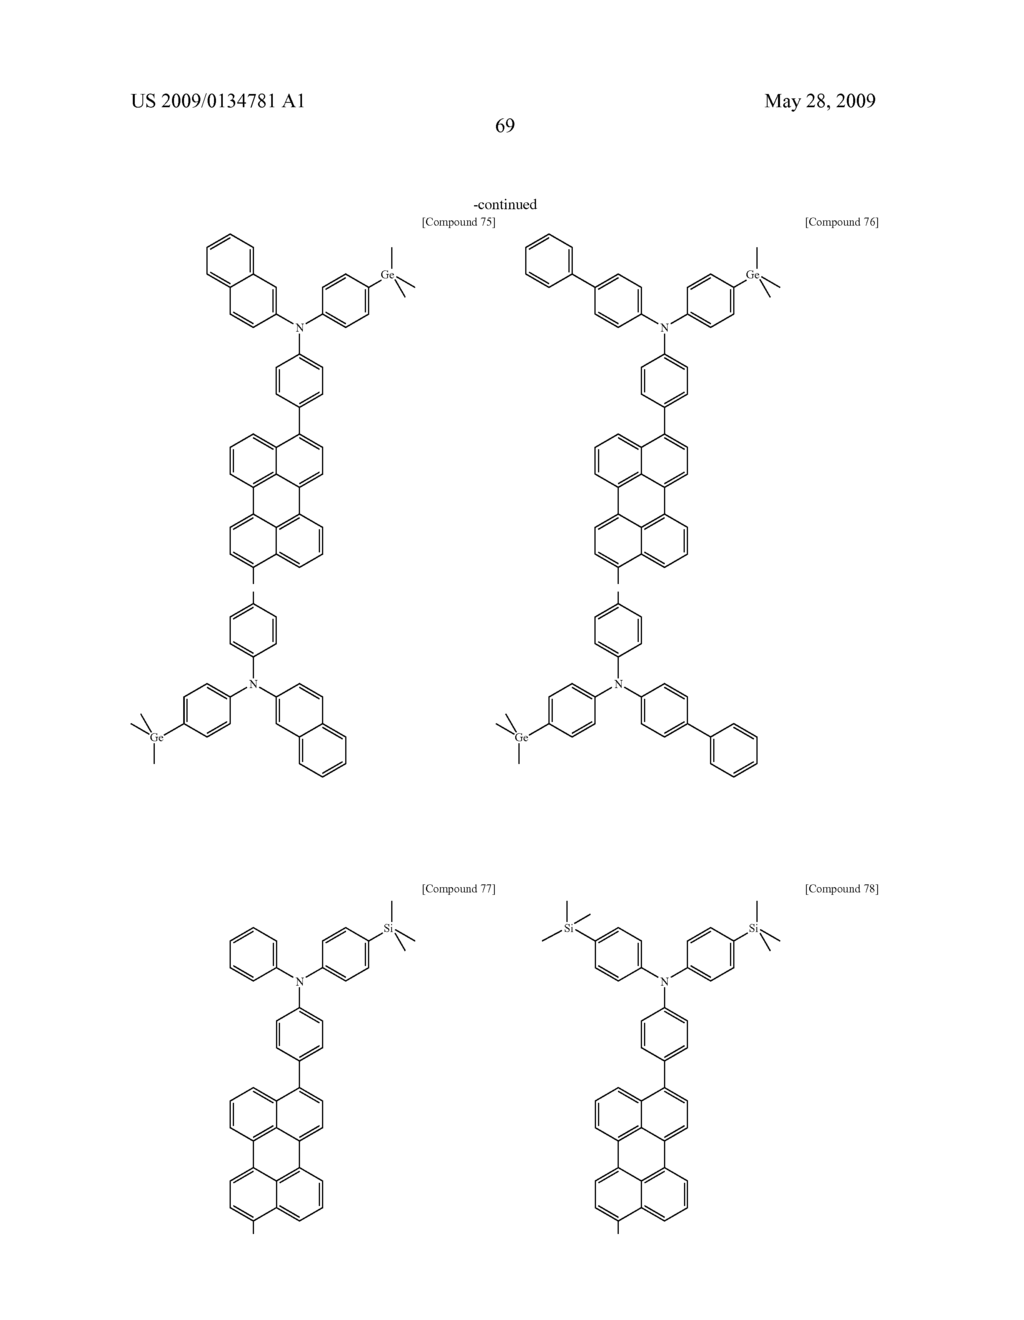 Diamine Derivatives, Preparation Method Thereof and Organic Electronic Device Using the Same - diagram, schematic, and image 71